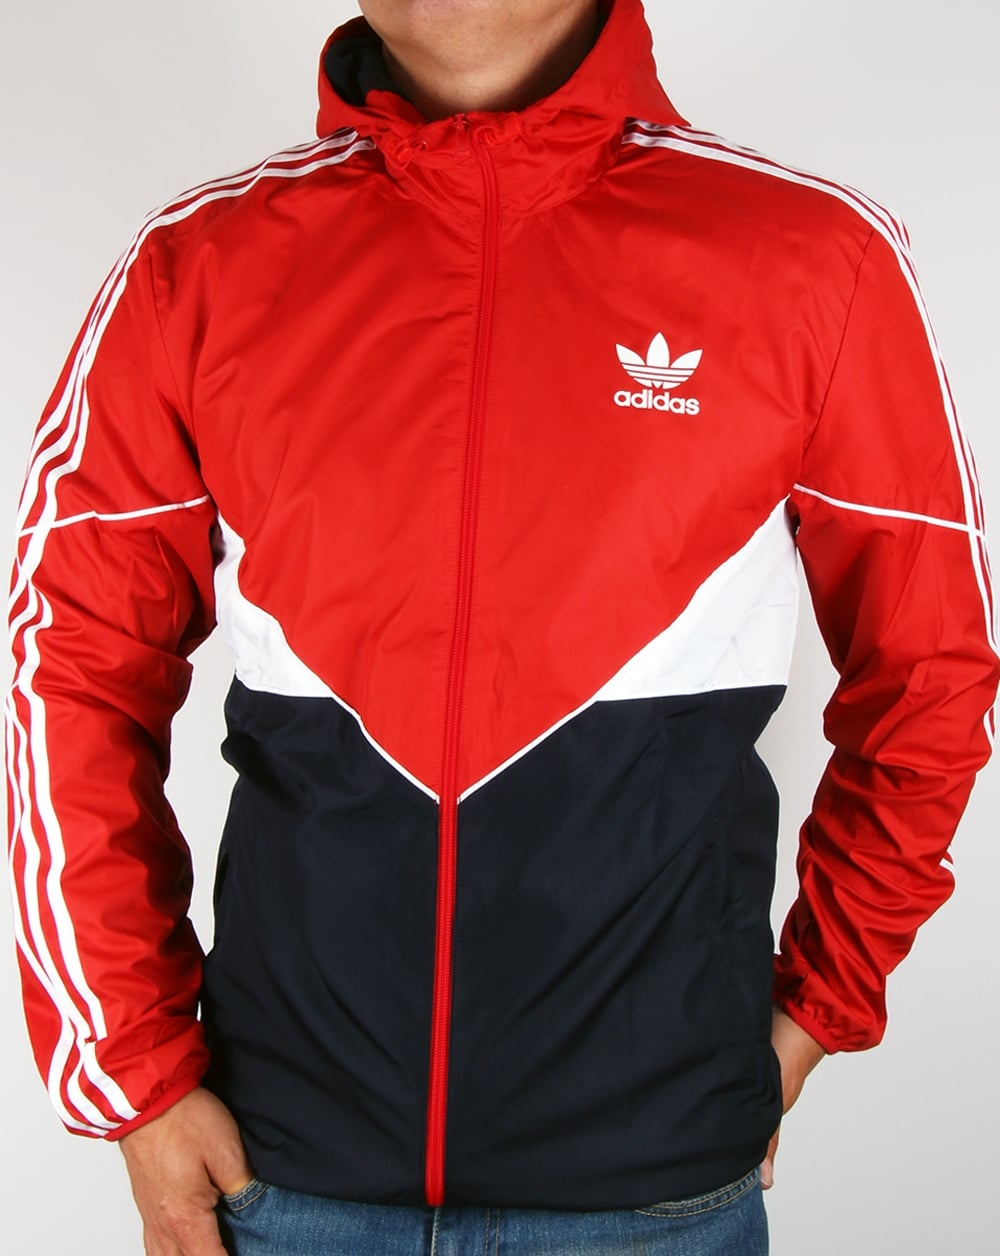 Adidas Originals Colorado Windbreaker Red/Navy,jacket,coat,mens